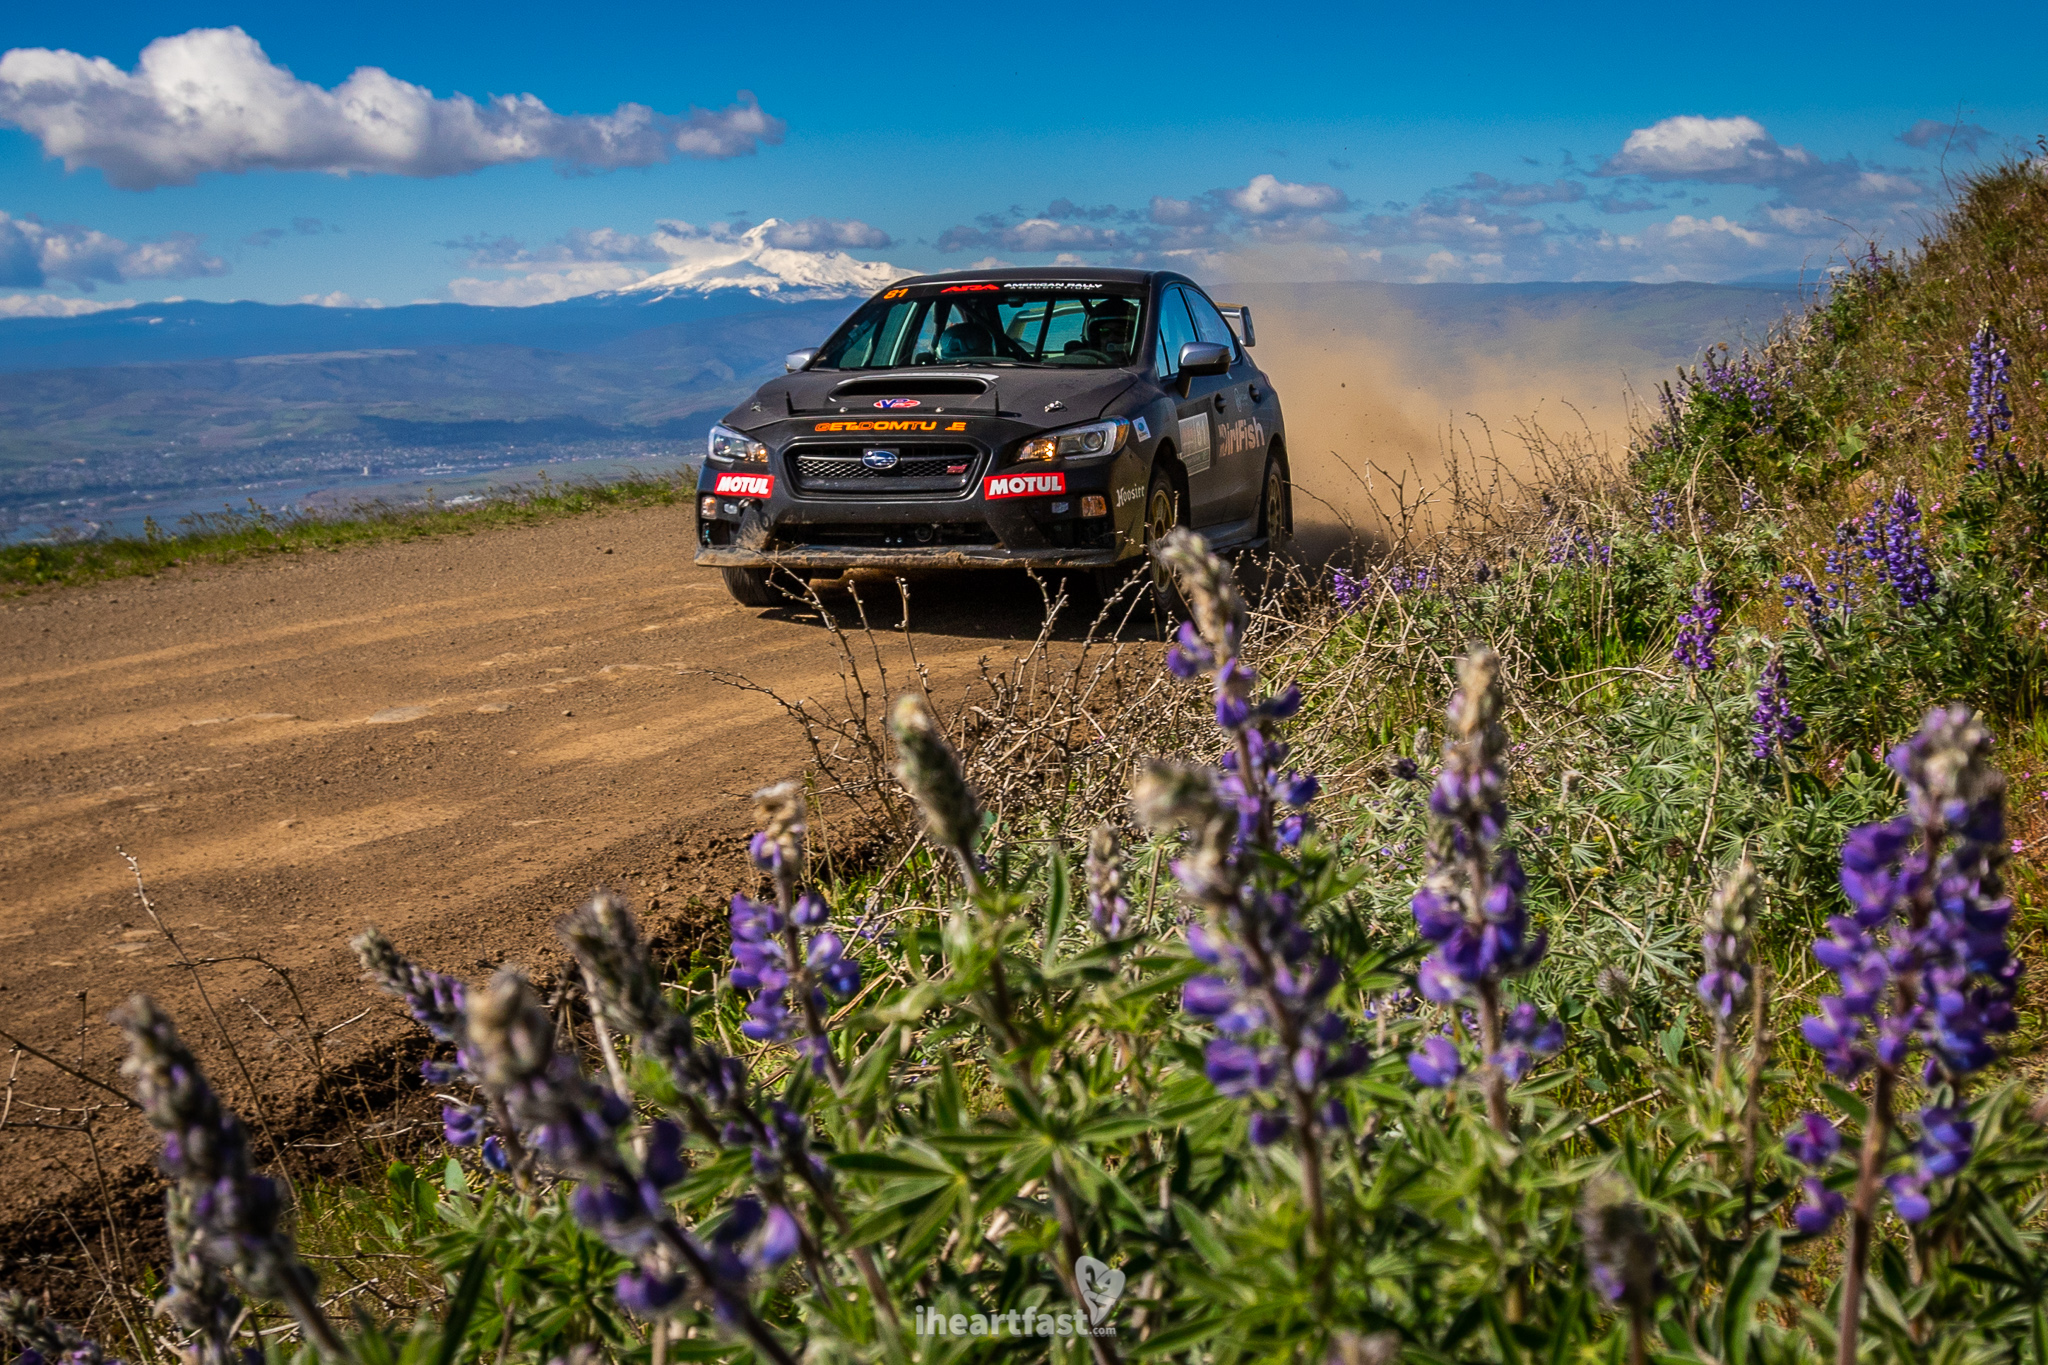 Wildflowers and mountains and rally cars.